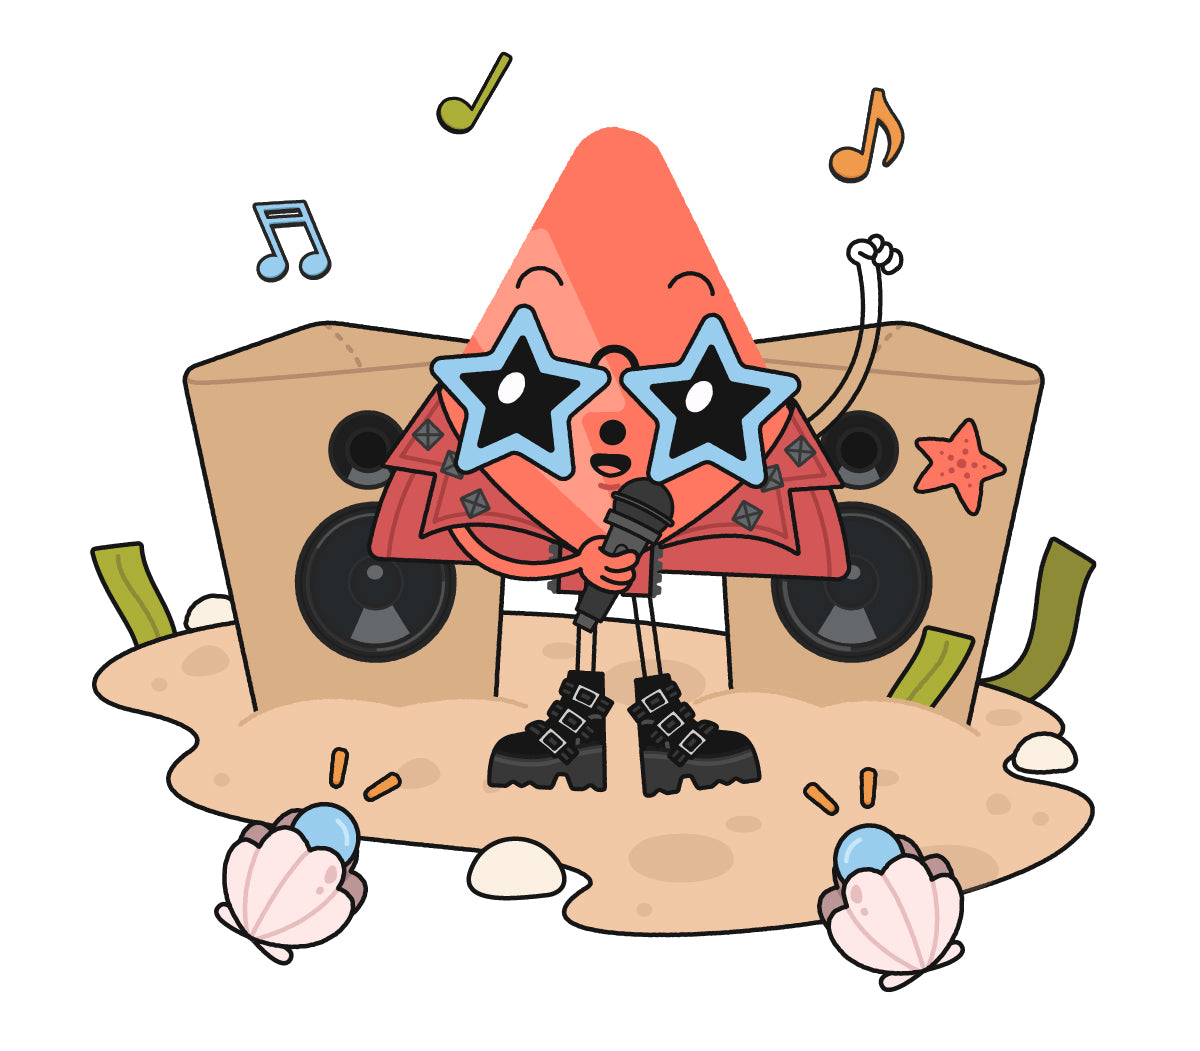 Coral triangle character dressed like a rock star, standing in front of amps made of sand-colored Nugget pillows on a sandy beach, with shell stage lights pointed at center stage